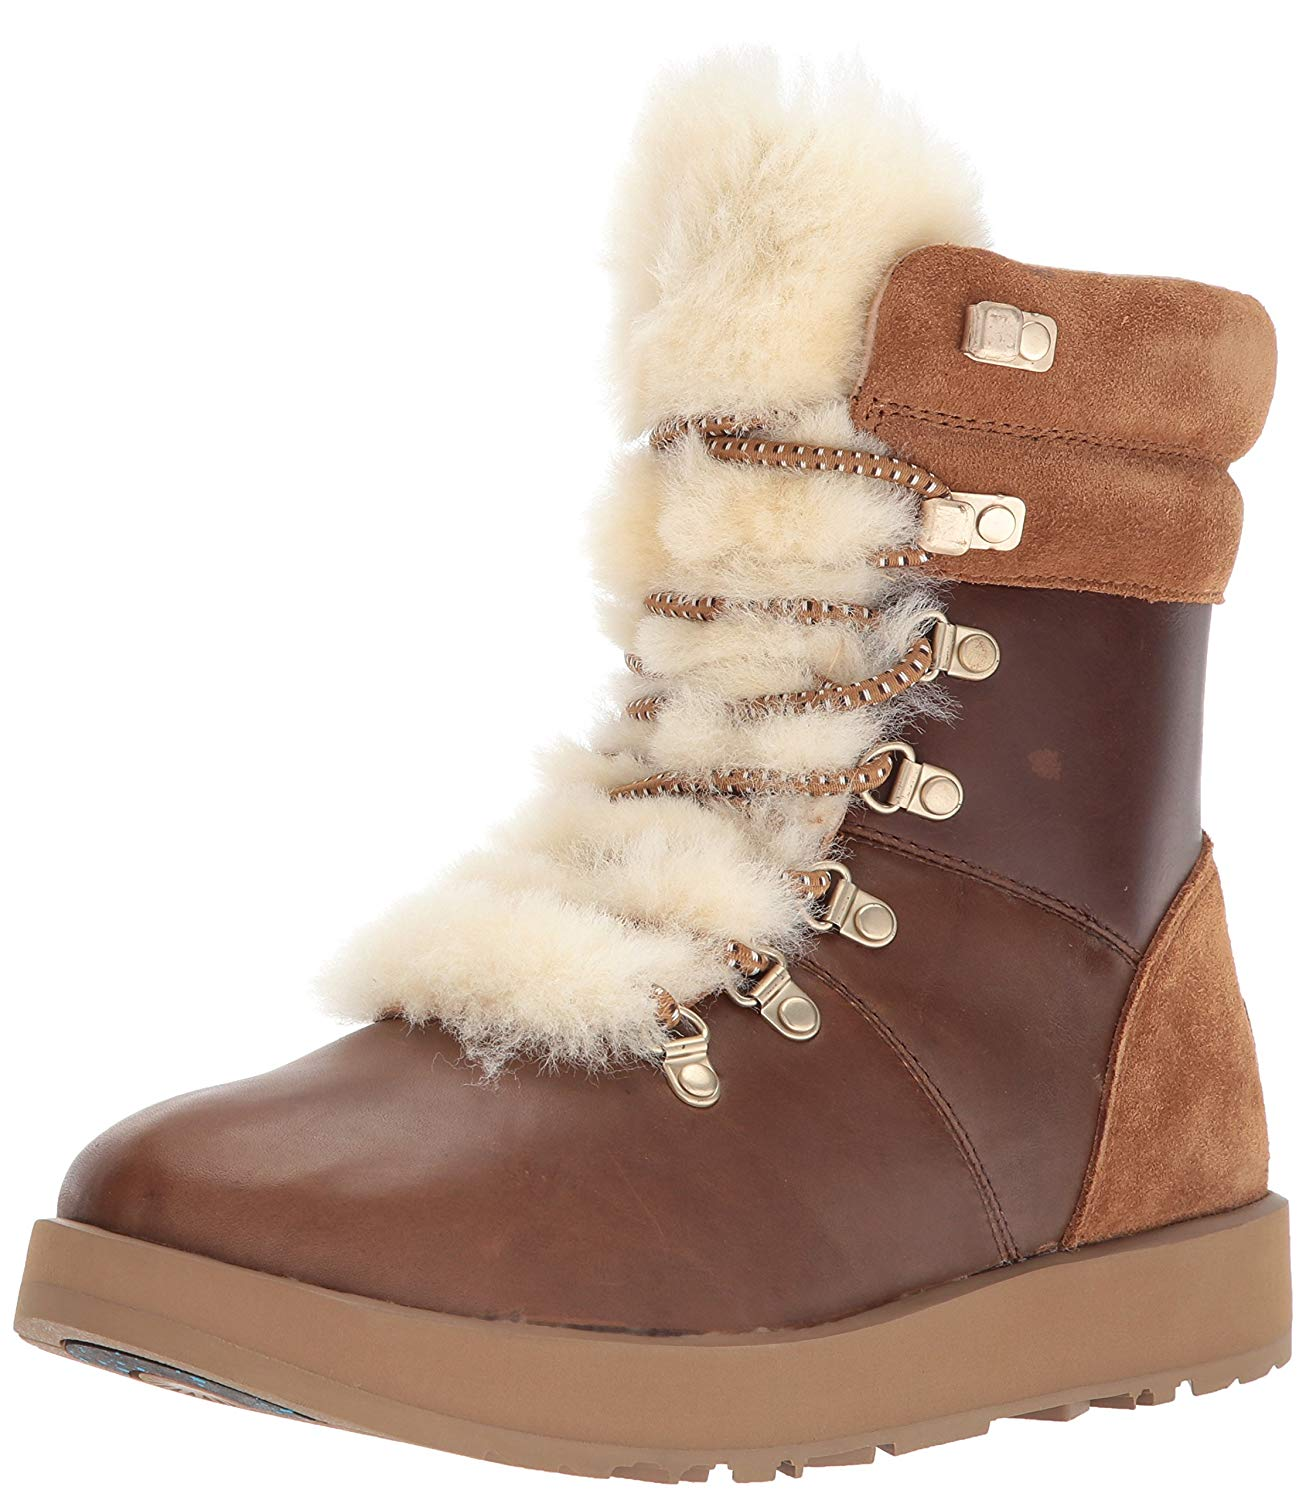 7d9c6a8a4f5 Uggs Cold Weather Boots - Cold Weather Boots